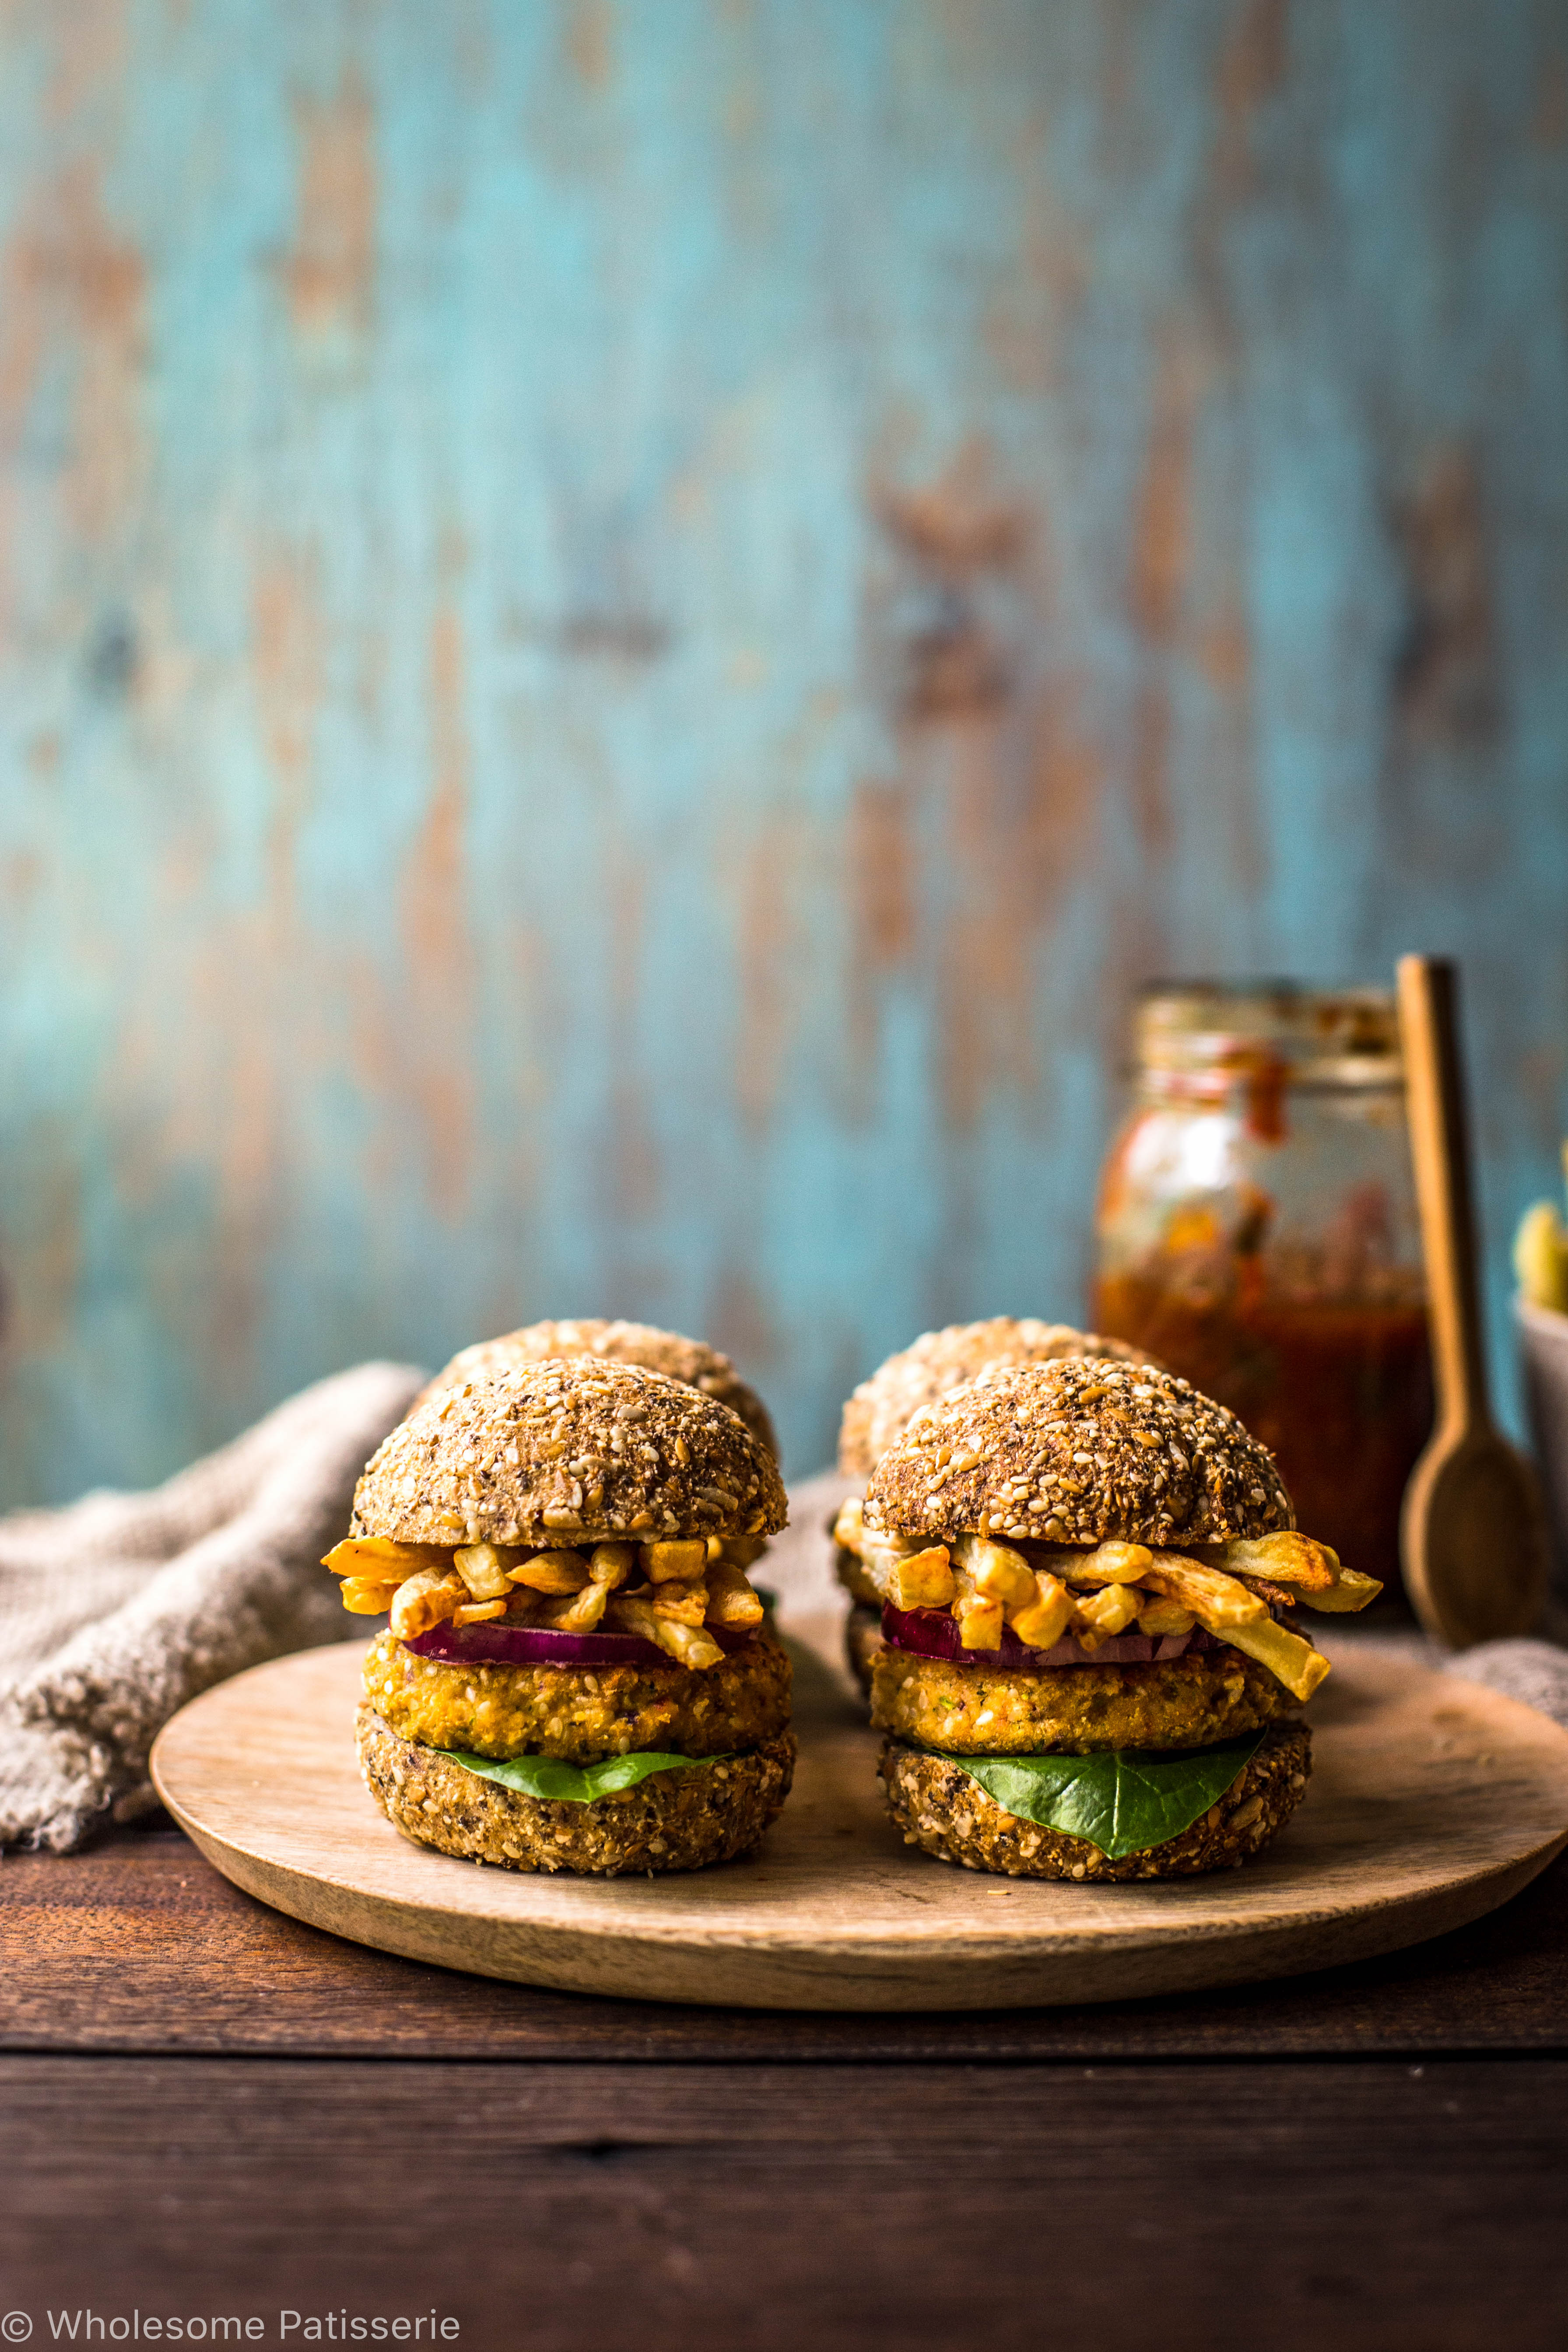 chickpea-sliders-with-french-fries-burgers-vegan-hamburger-gluten-free-mini-delicious-vegetable